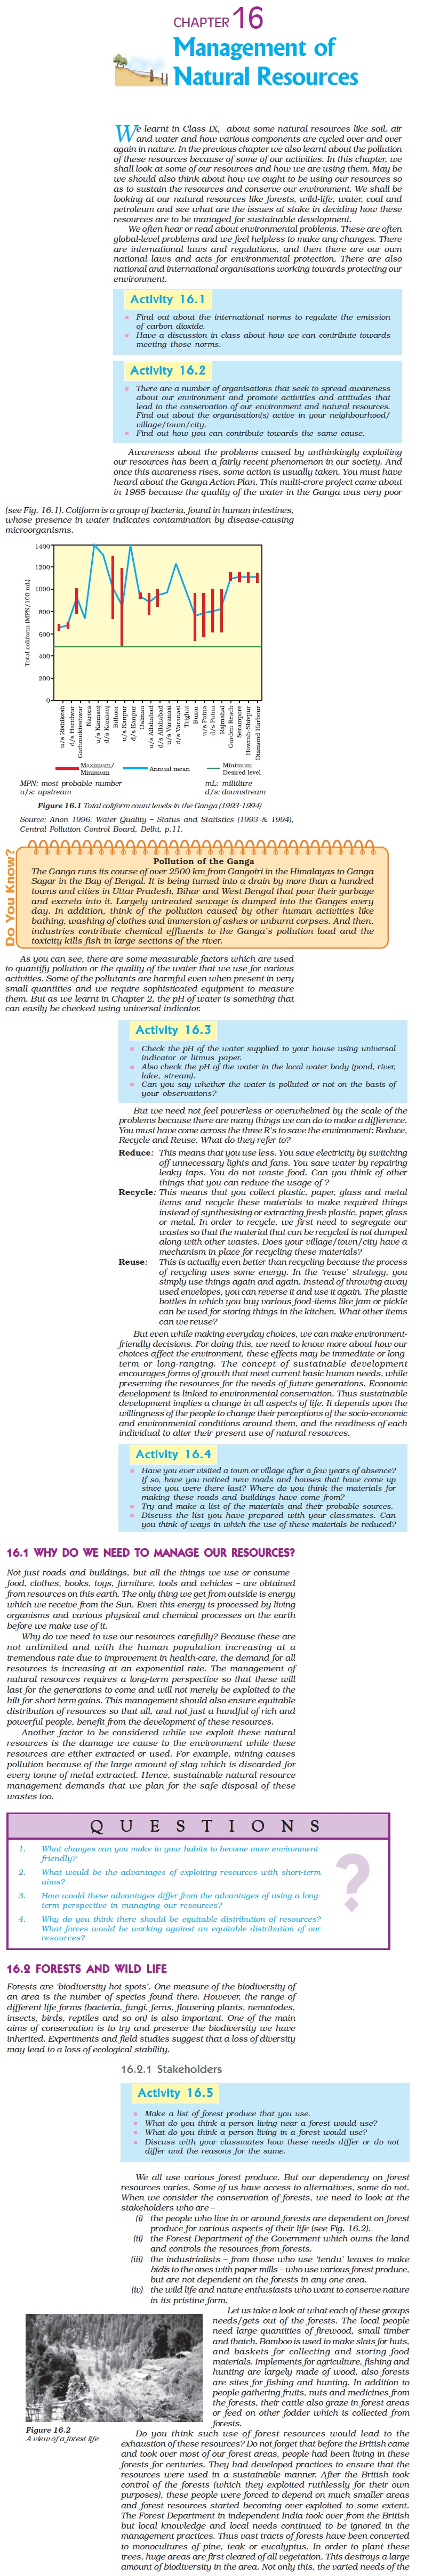 NCERT Class X Science: Chapter 16 - Management of Natural Resources